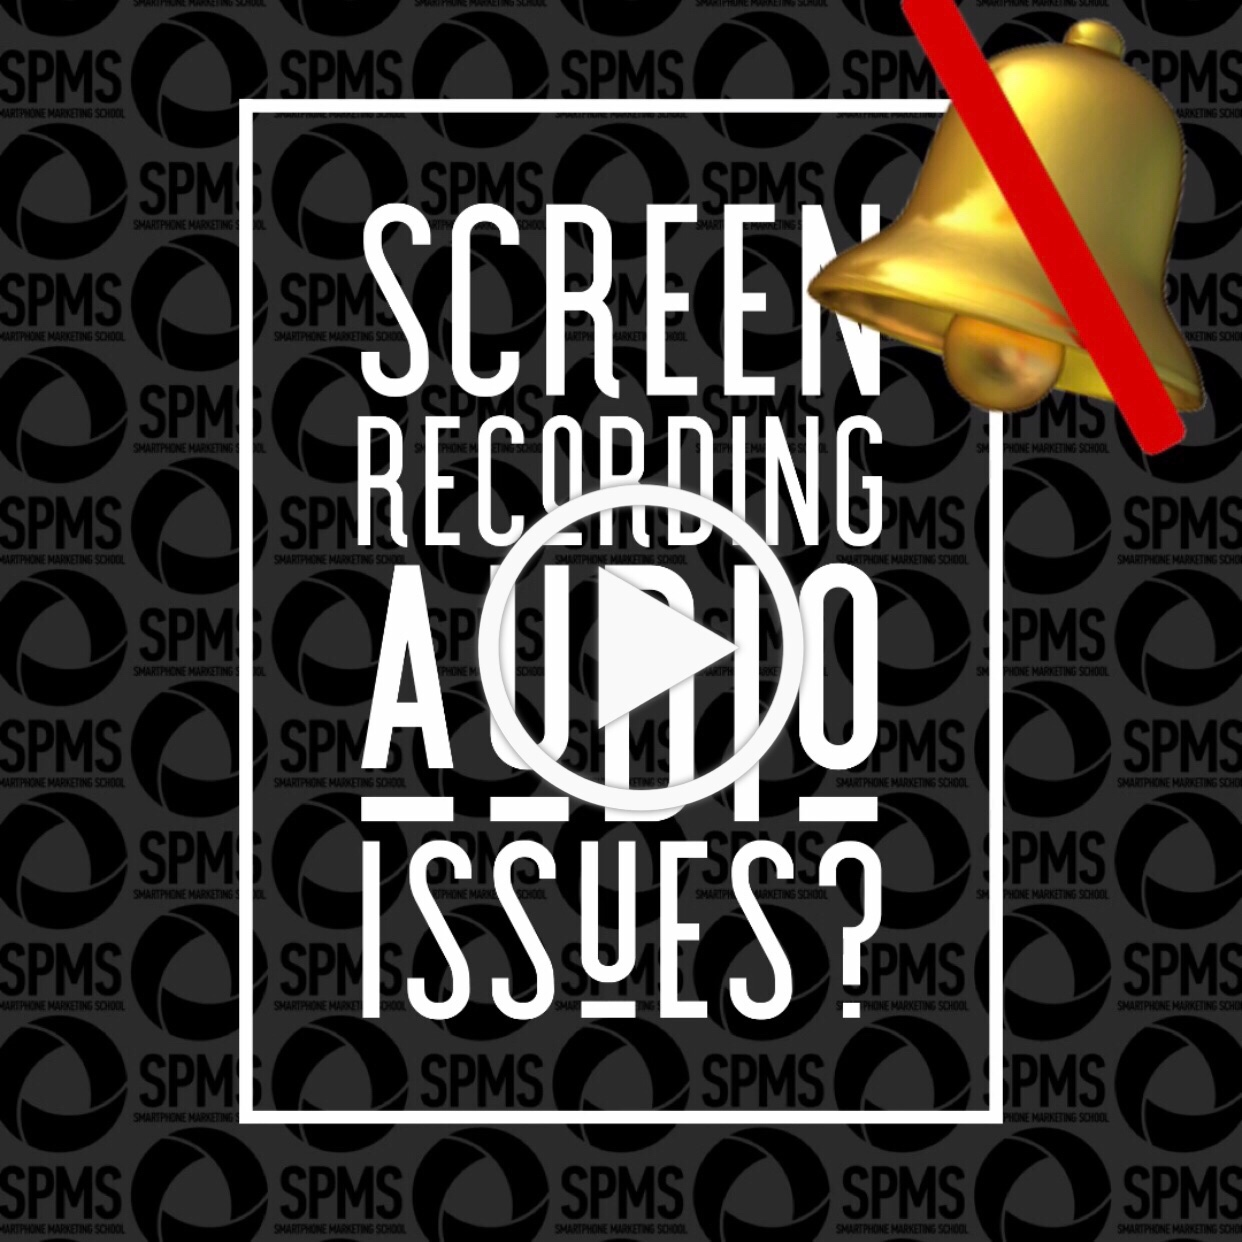 Screen Recording Audio Glitch and How To Fix It